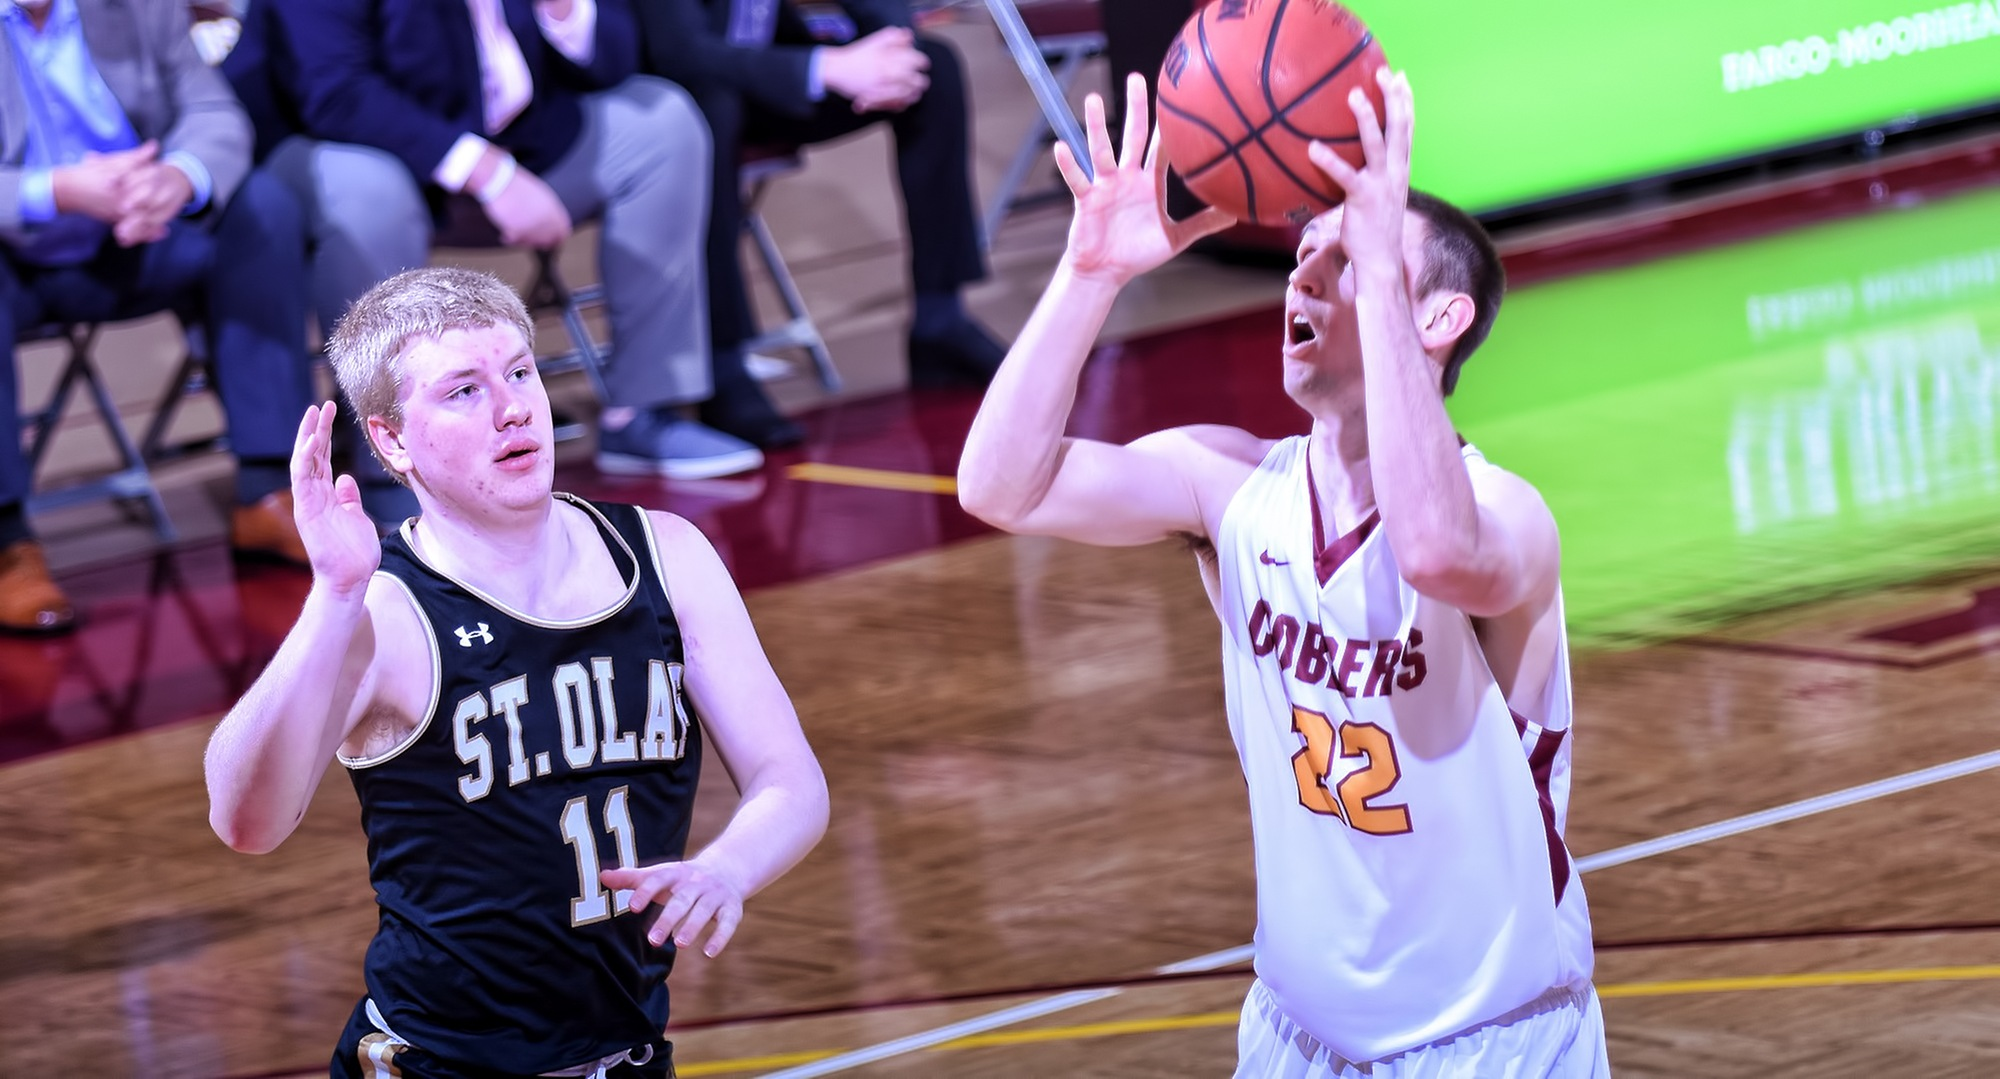 Junior Jacob Fredrickson went 3-for-5 from the floor, 5-for-7 from the free throw line and finished with a team-high 11 points in the Cobbers' game at St. Olaf.